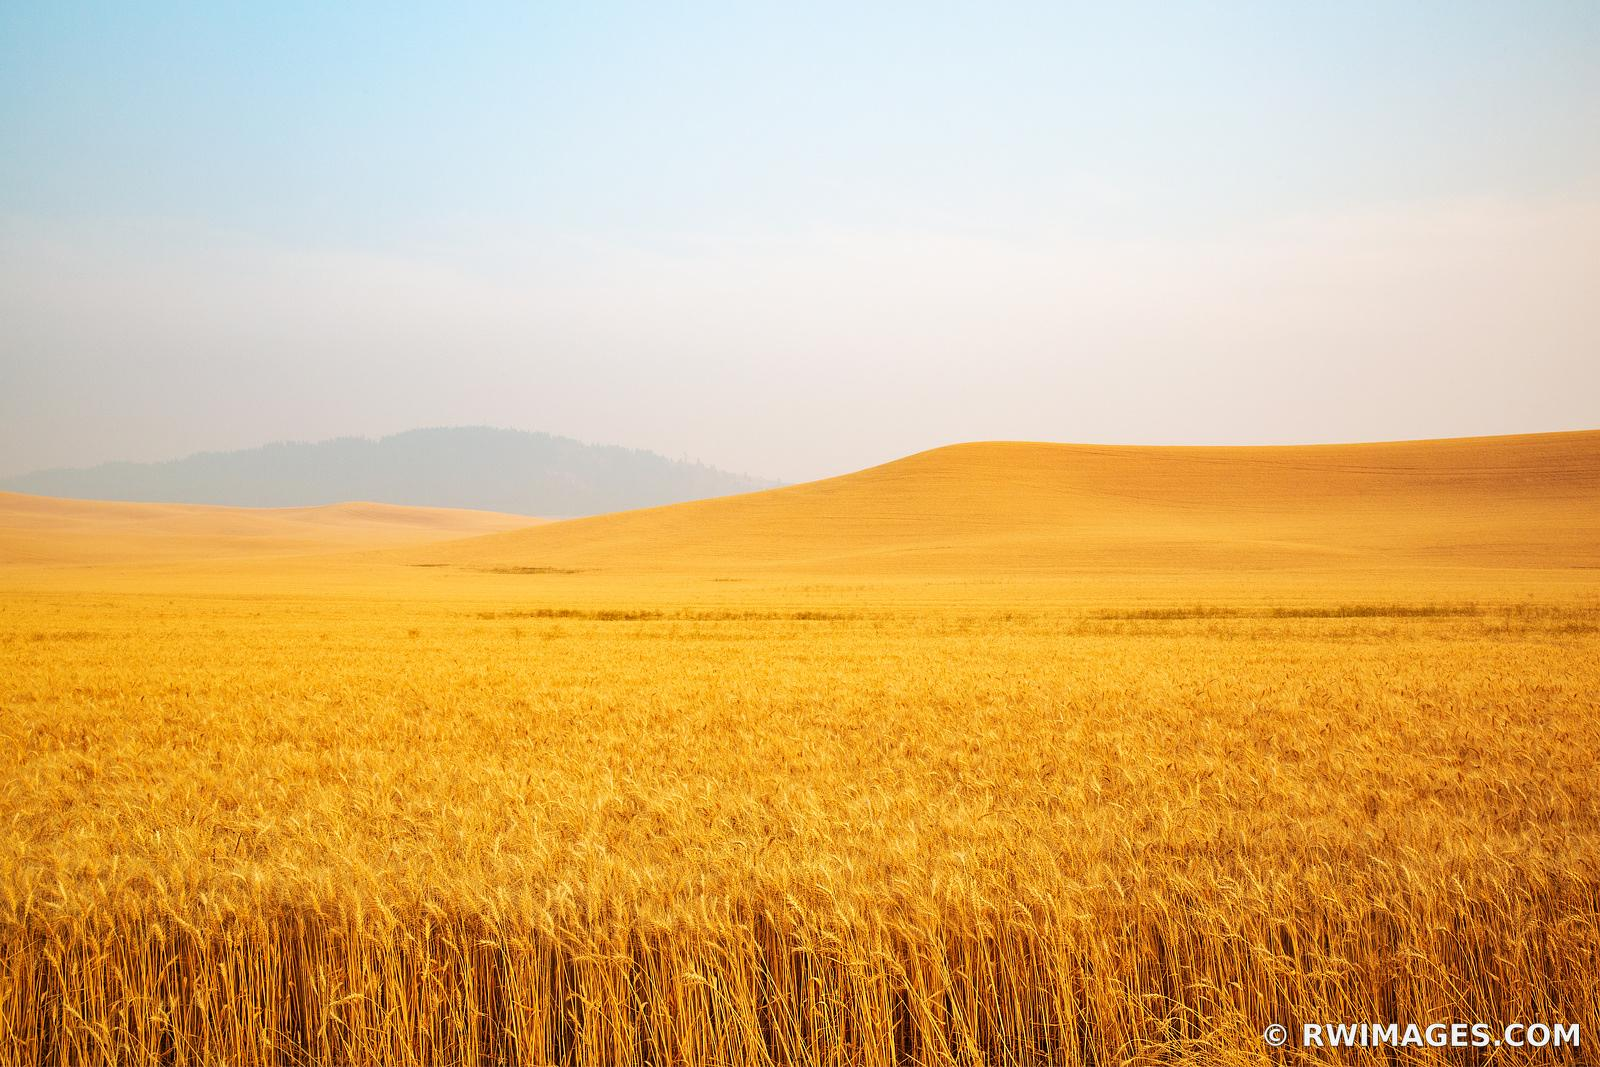 GOLDEN WHEAT FIELD SUMMER HARVEST PALOUSE REGION EASTERN WASHINGTON STATE LANDSCAPE